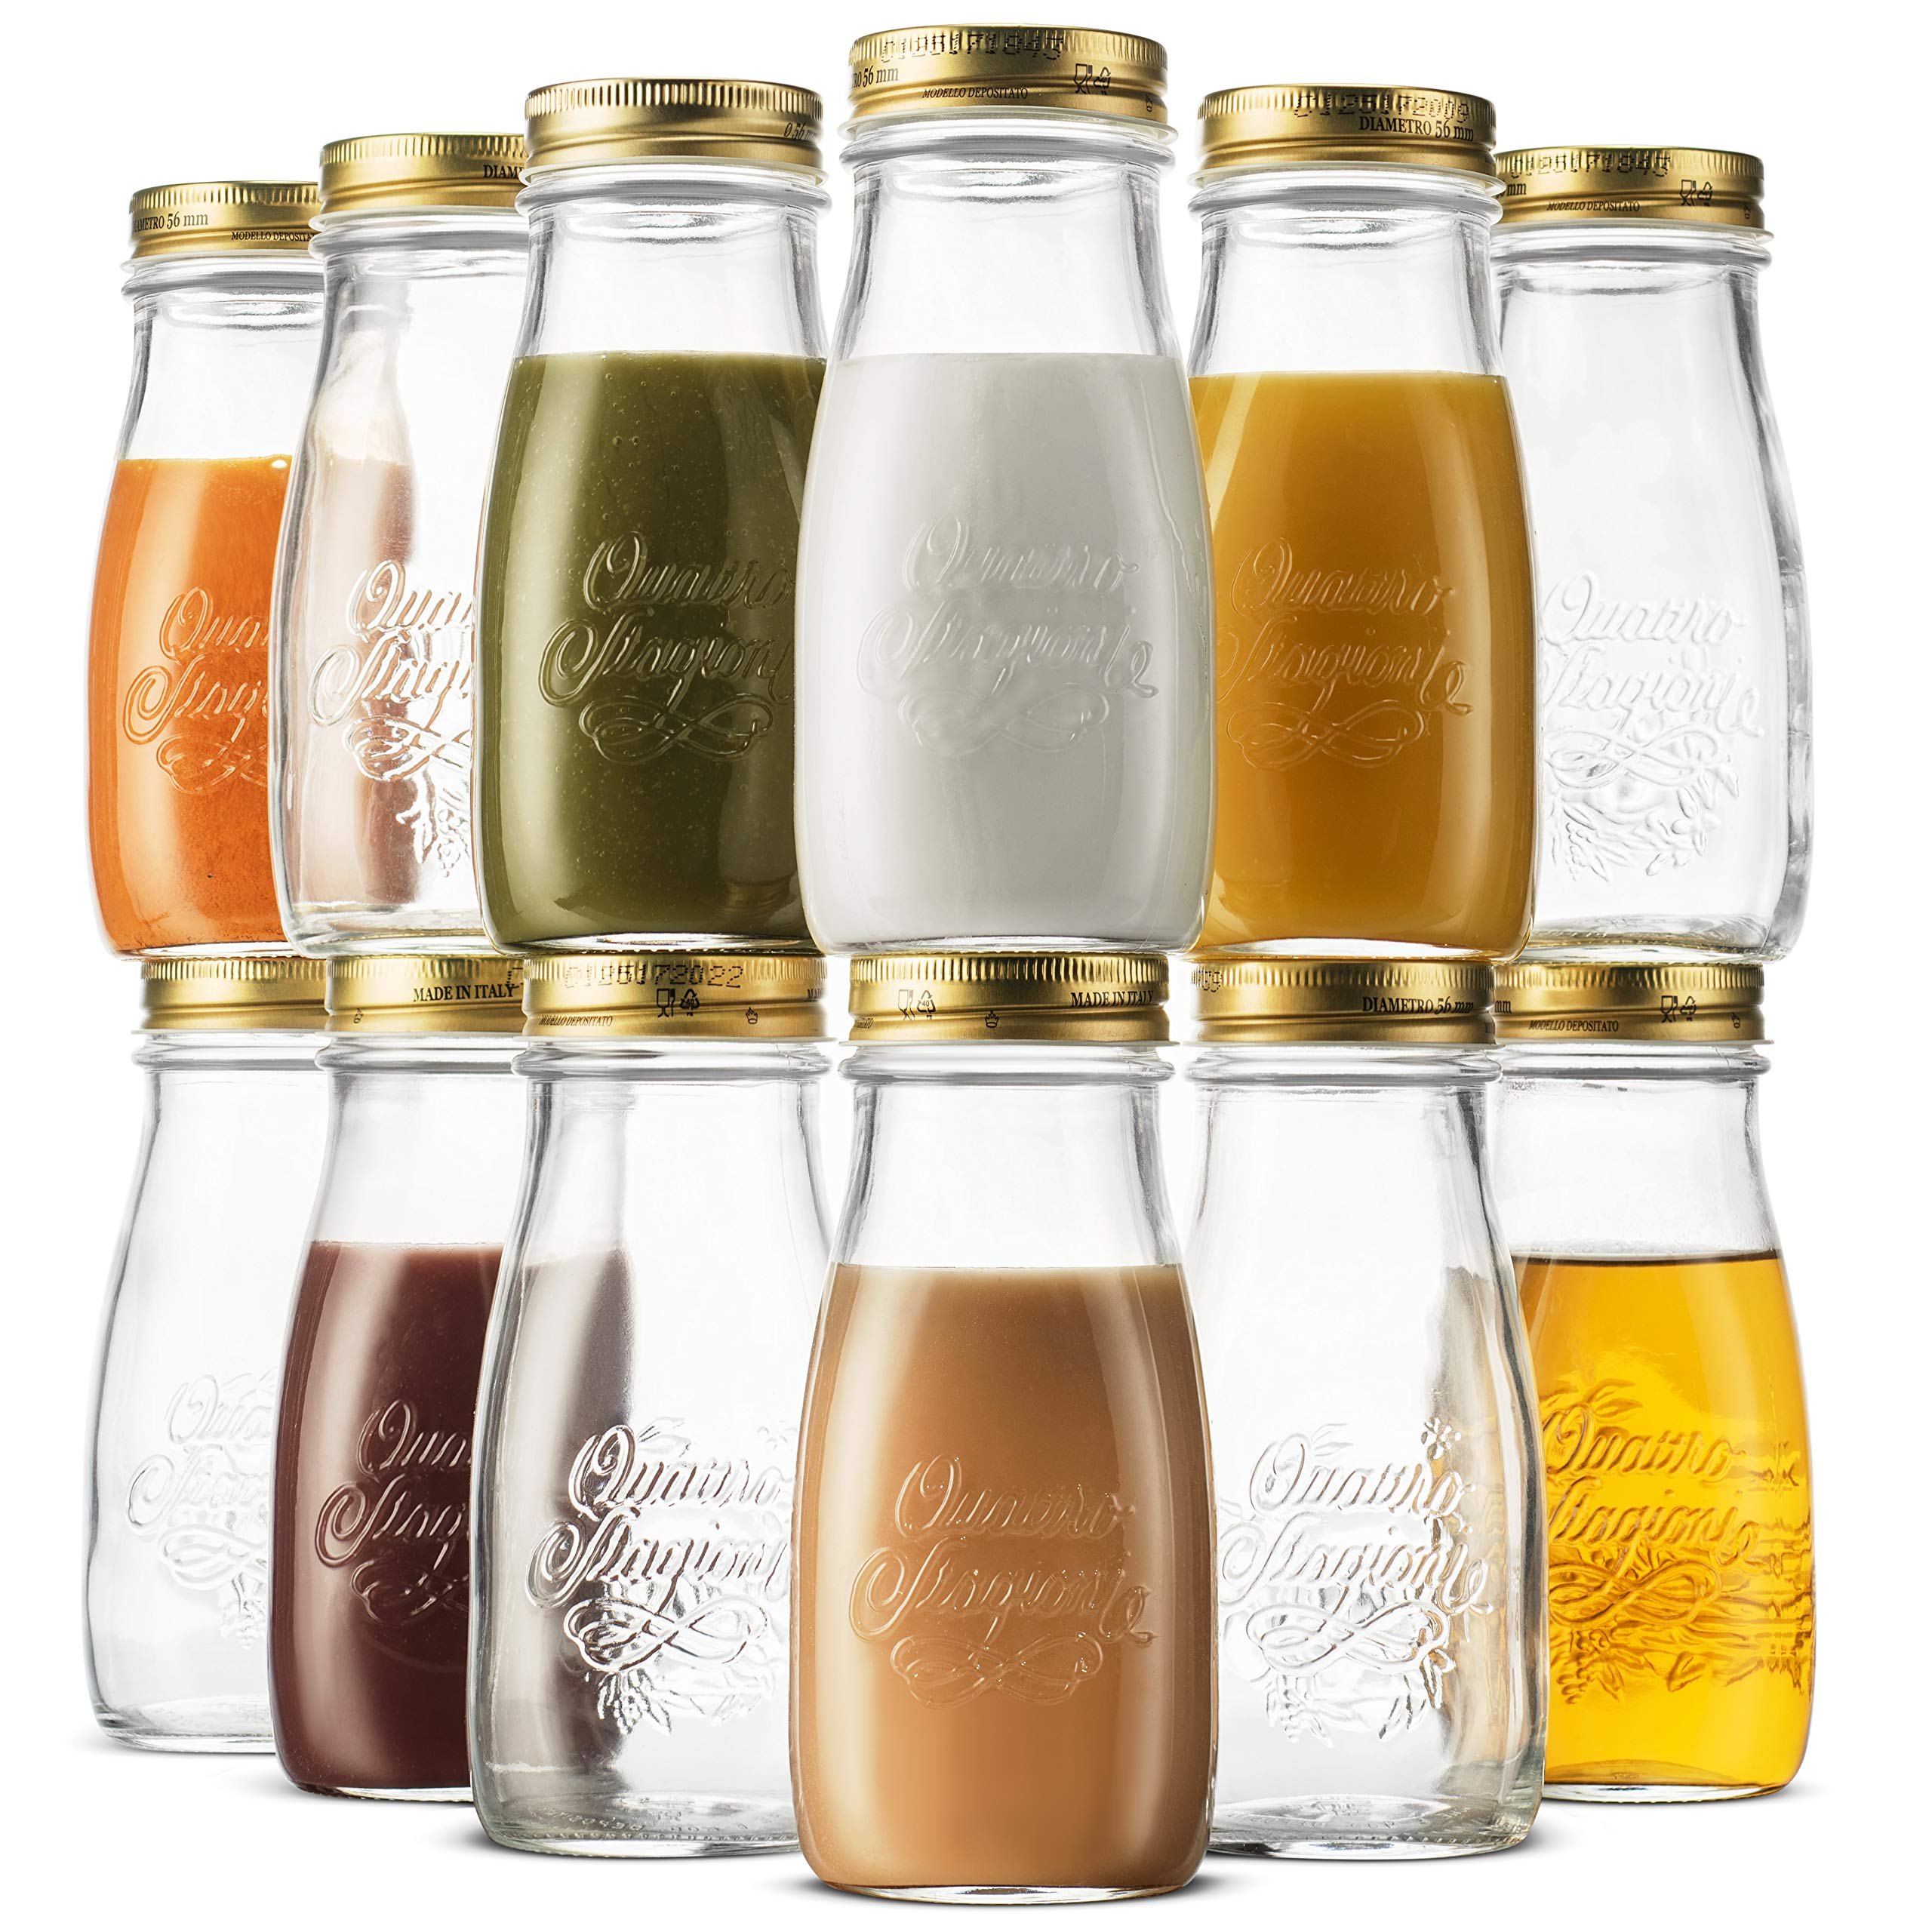 Bormioli Rocco Quattro Stagioni Glass Drinking jar bottle 13½ Ounce Milk Bottles with Gold Metal Airtight Lids, For Juicing, Smoothies, Homemade Beverages Bottle, Reusable Glass Water Bottle (12 Pack) by Bormioli Rocco